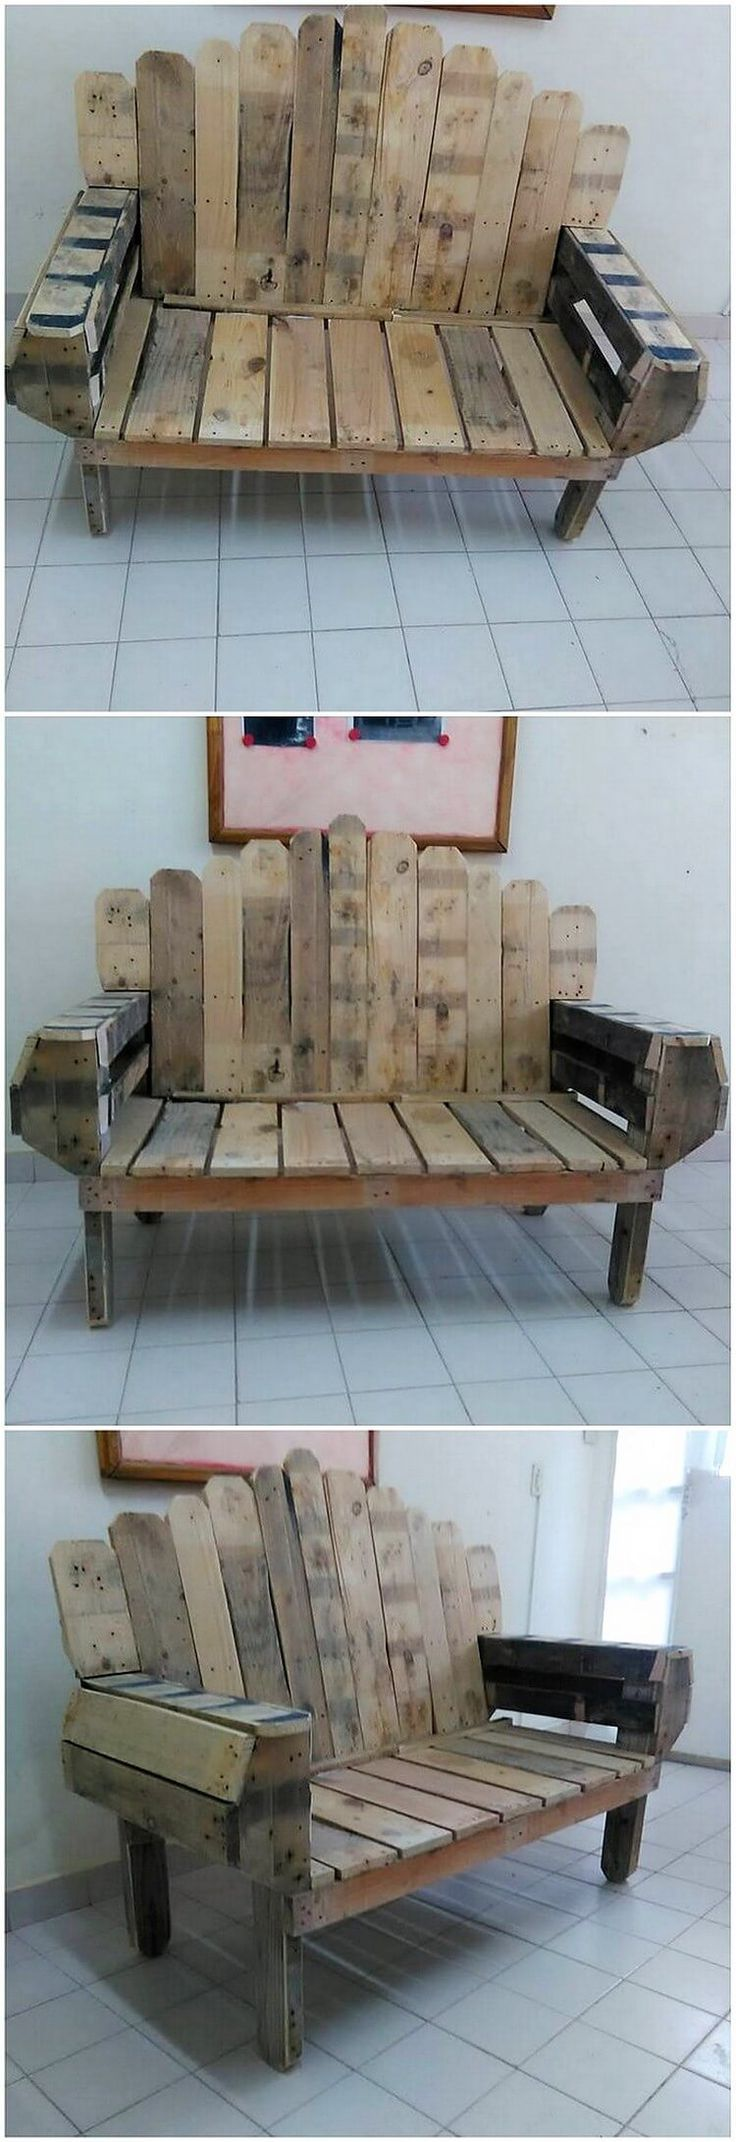 This is much a creatively designed project of the bench or the seat as crafted with the wood pallet. You will be finding it do be all accompanied with the durable and sturdy use of the wood pallet being part of it.